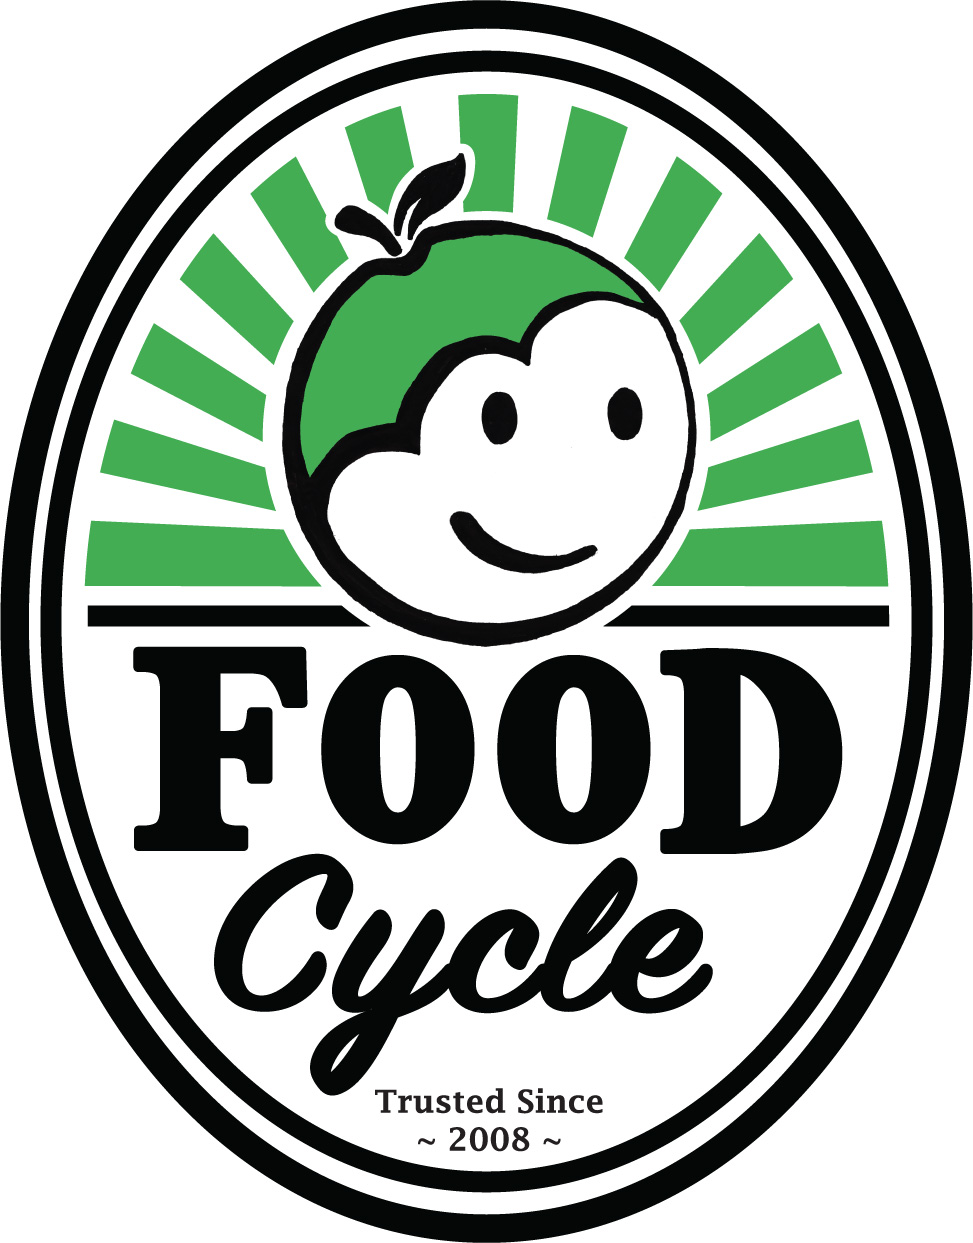 Food Cycle